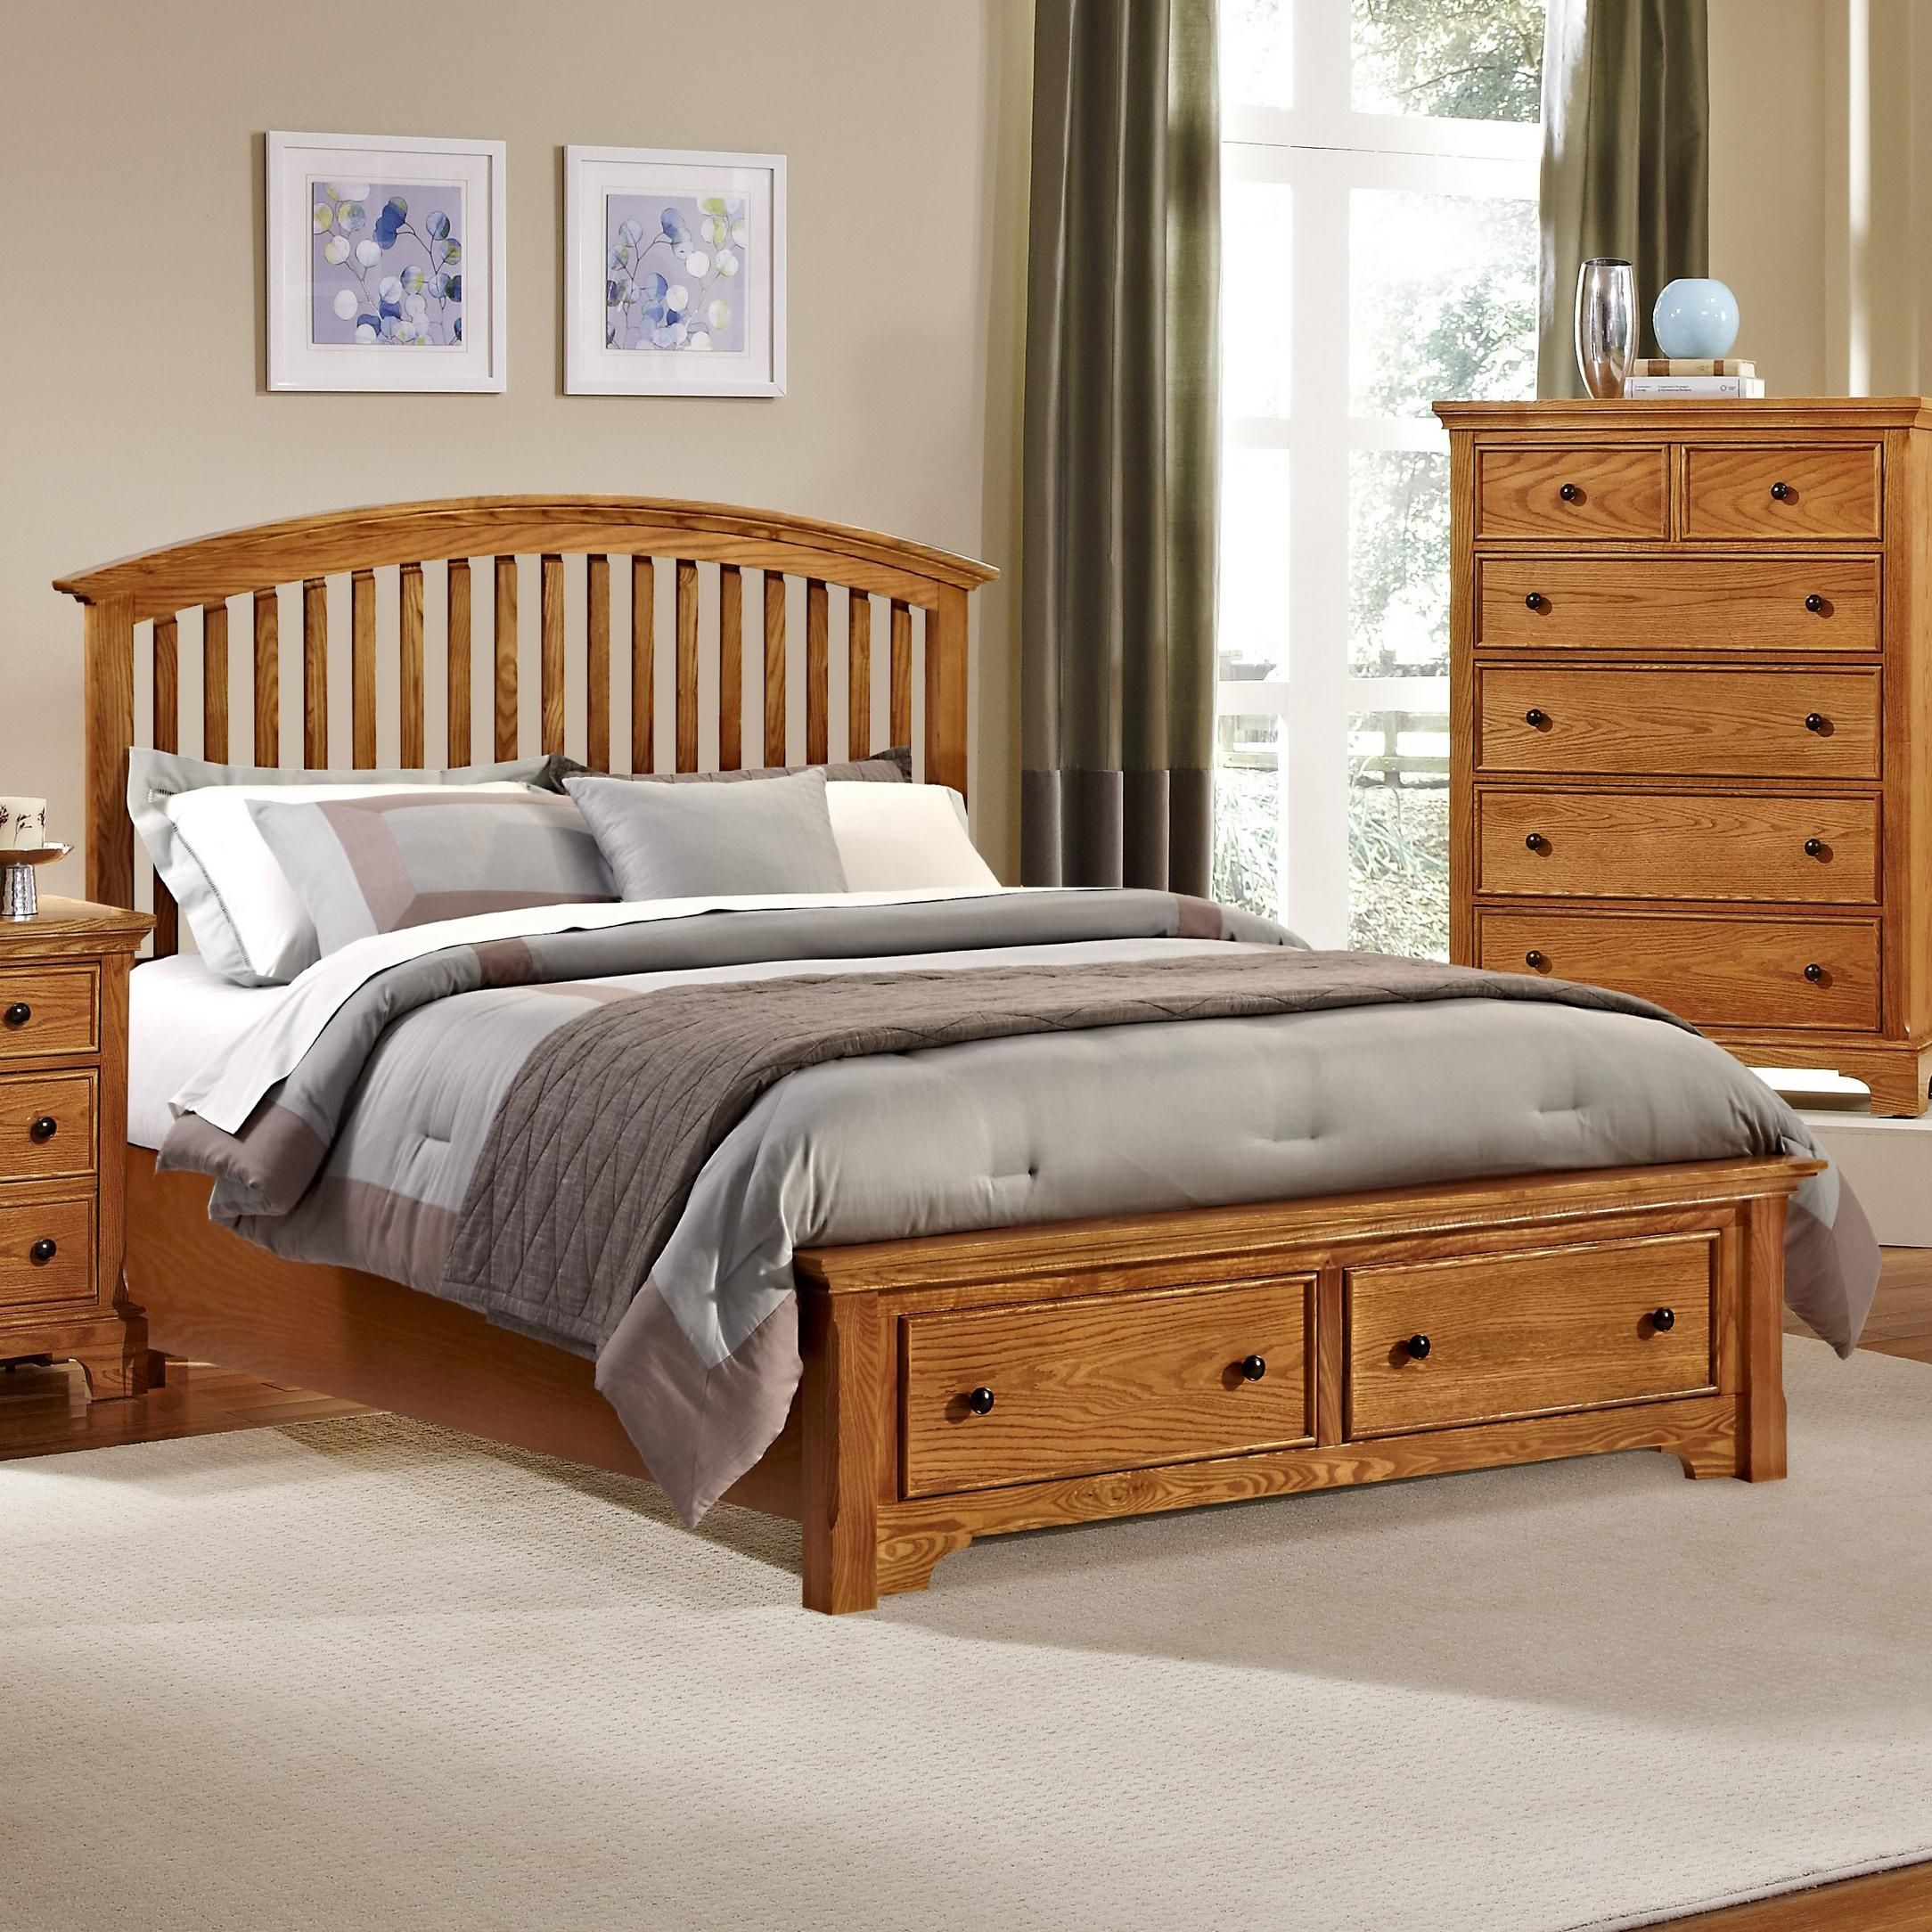 Forsyth King Arched Storage Bed by Vaughan Bassett at